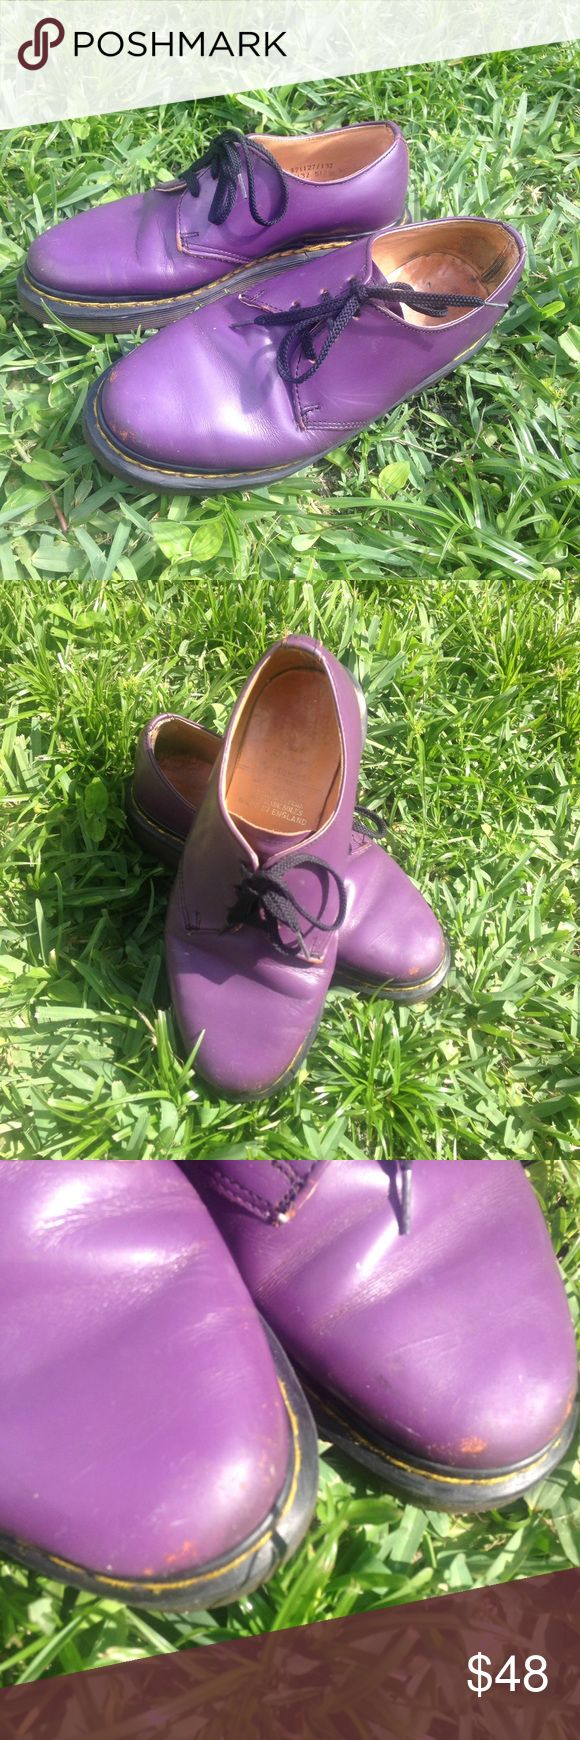 Awesome pair of purple Doc Martens. Awesome pair of purple Doc Martens size 3. They are in good condition with s few scuffs on the toes. These would great with any outfit. No trades or swaps. Doc martens Shoes Lace Up Boots